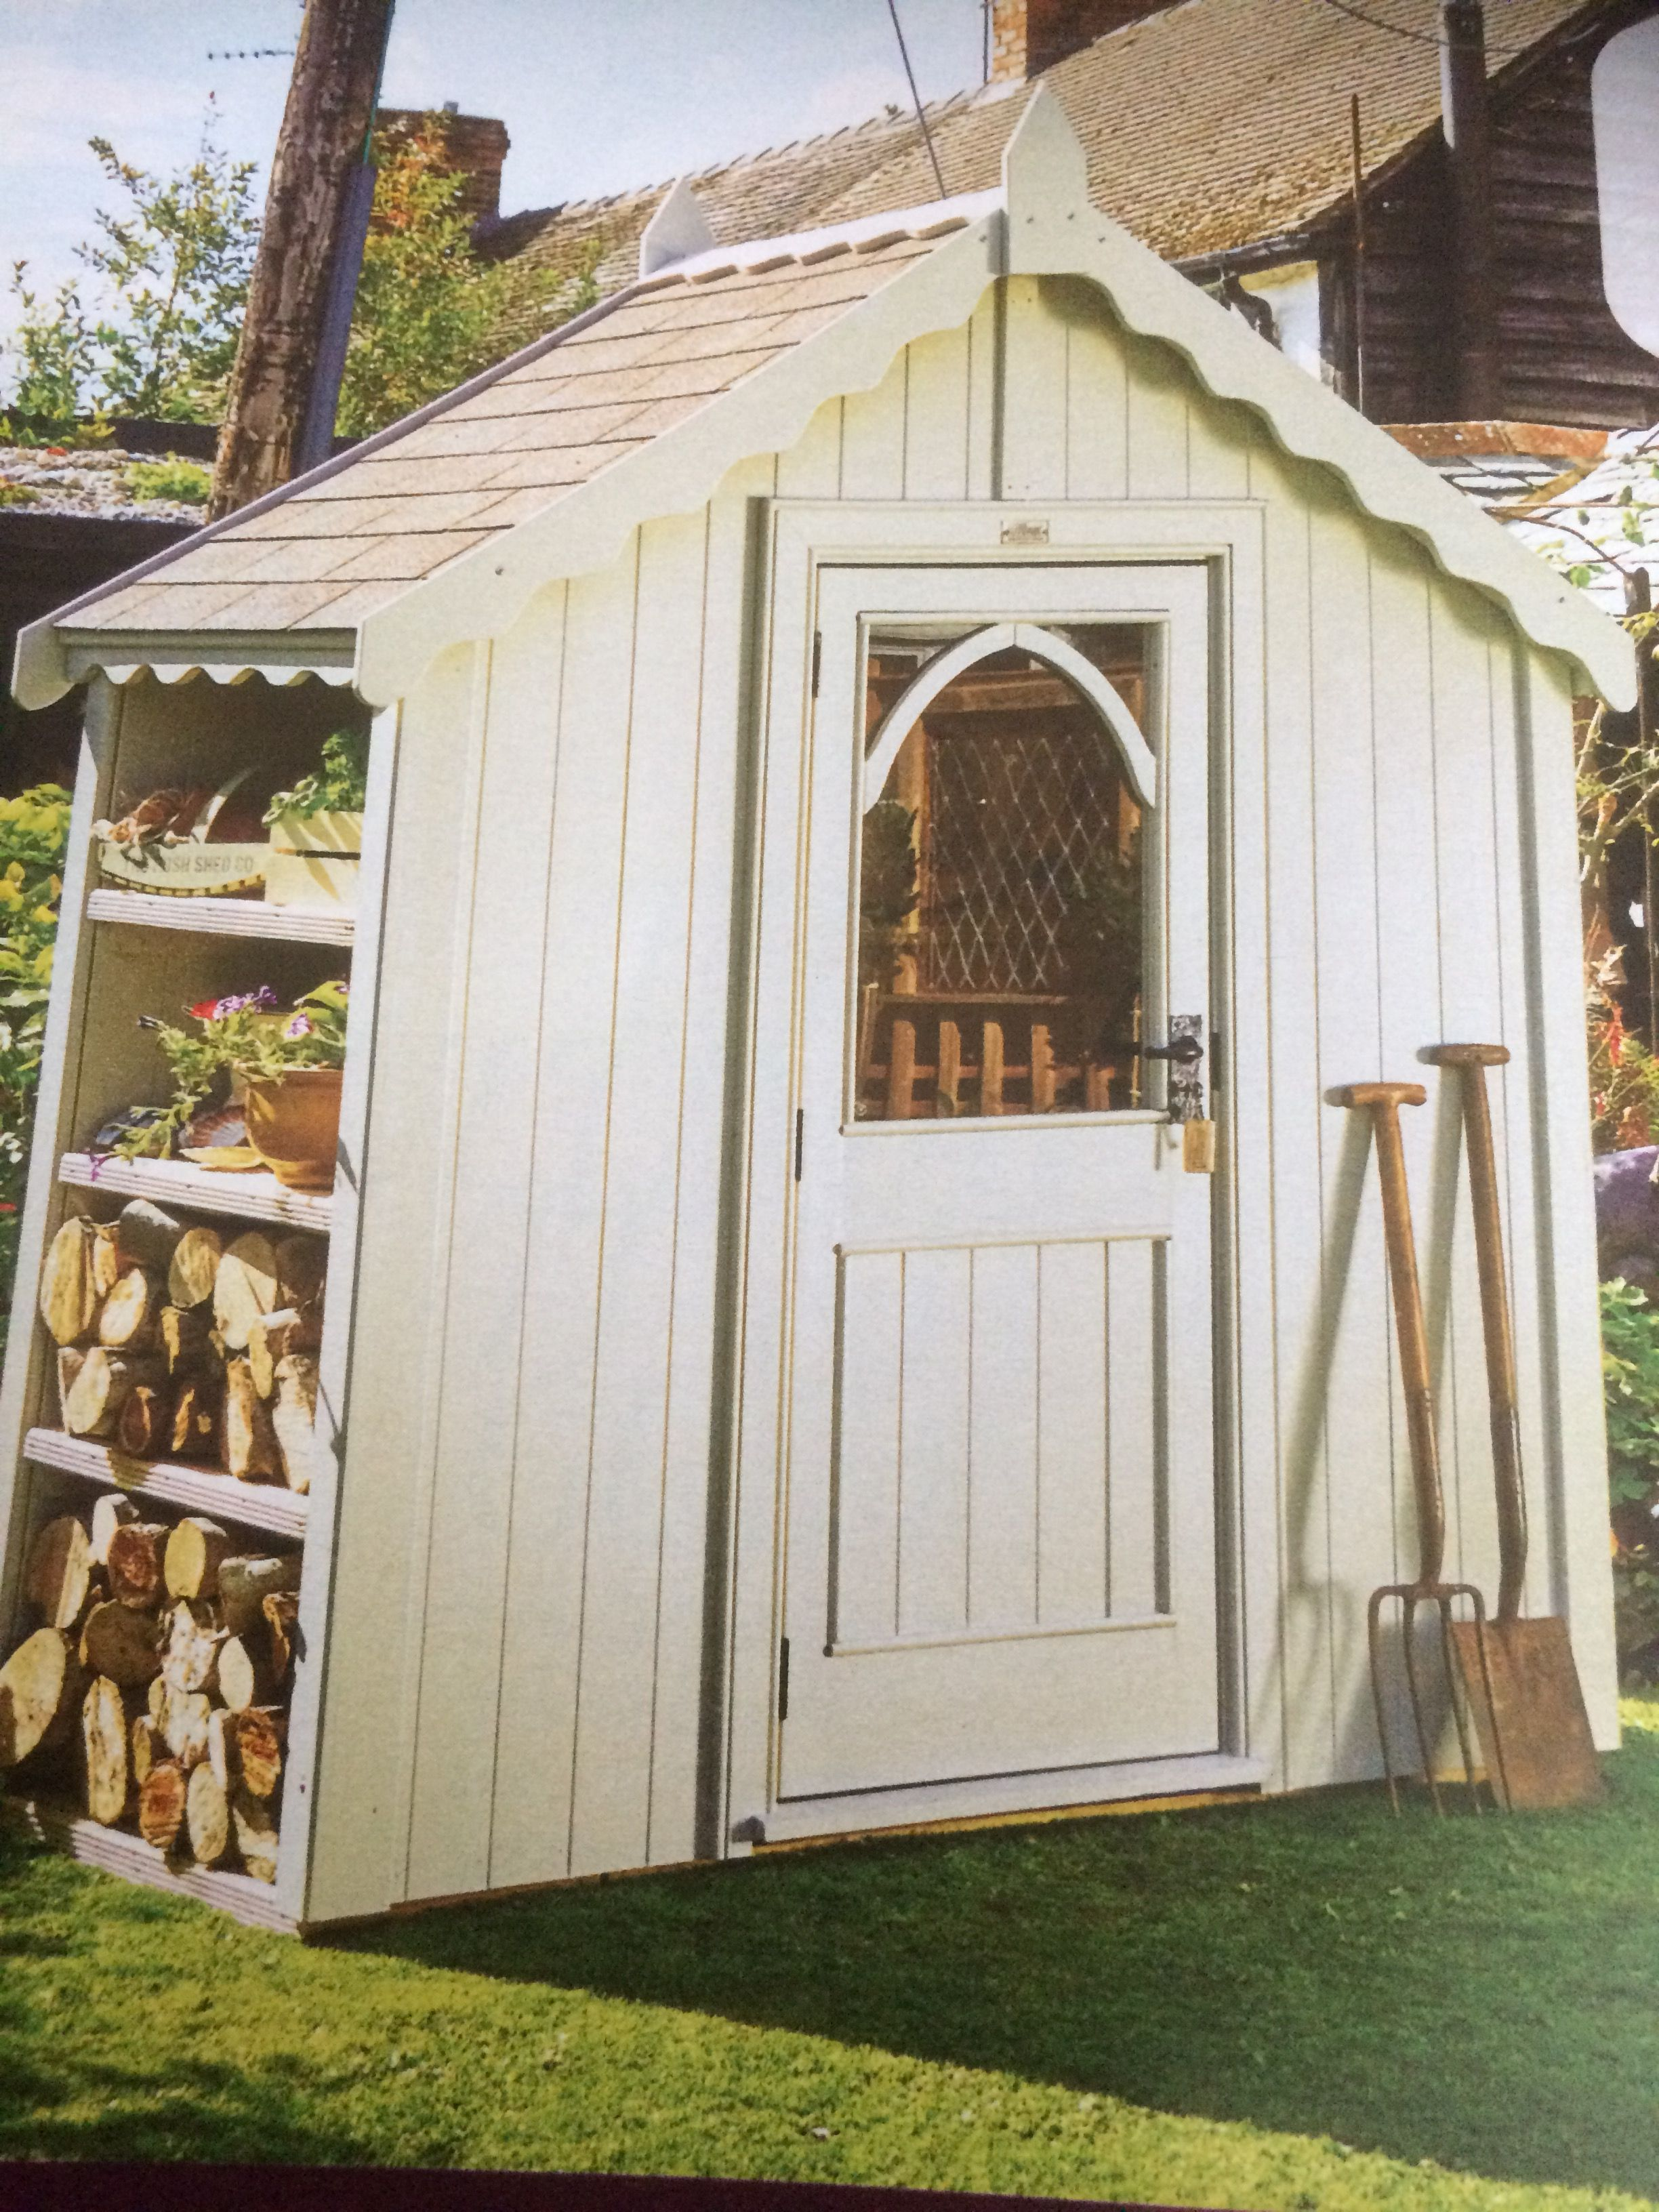 Pin by Steve Maylor on bird aviaries House styles